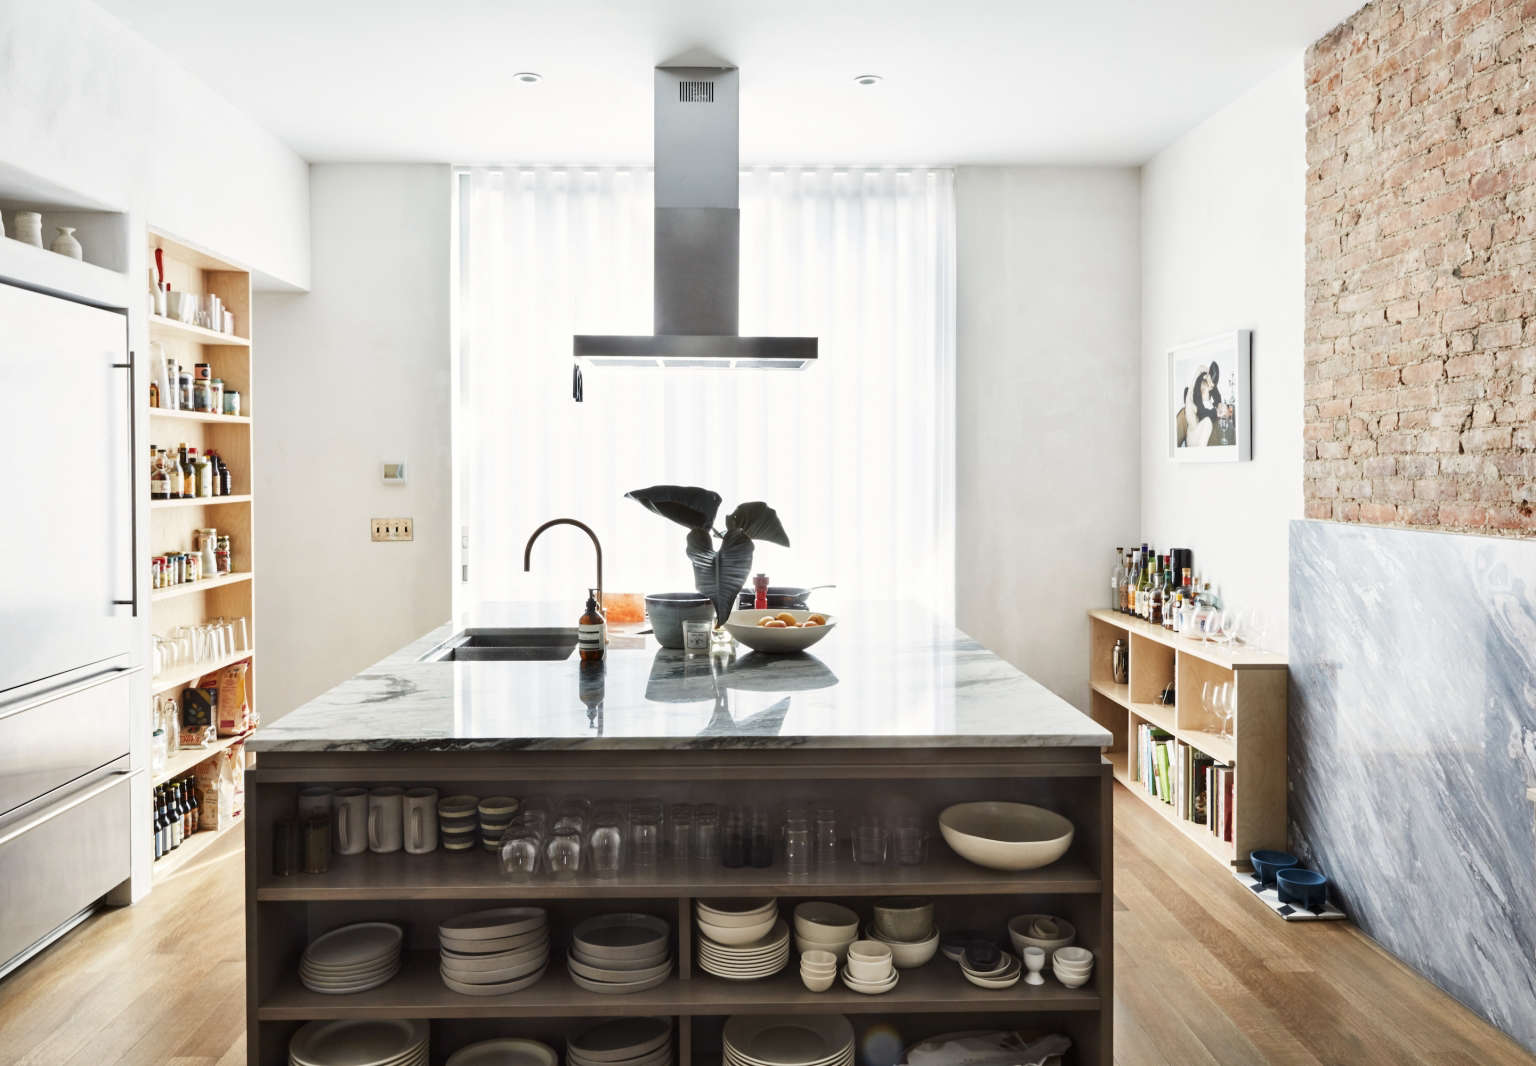 10 Easy Pieces Ceiling Mounted Kitchen Range Hoods Remodelista